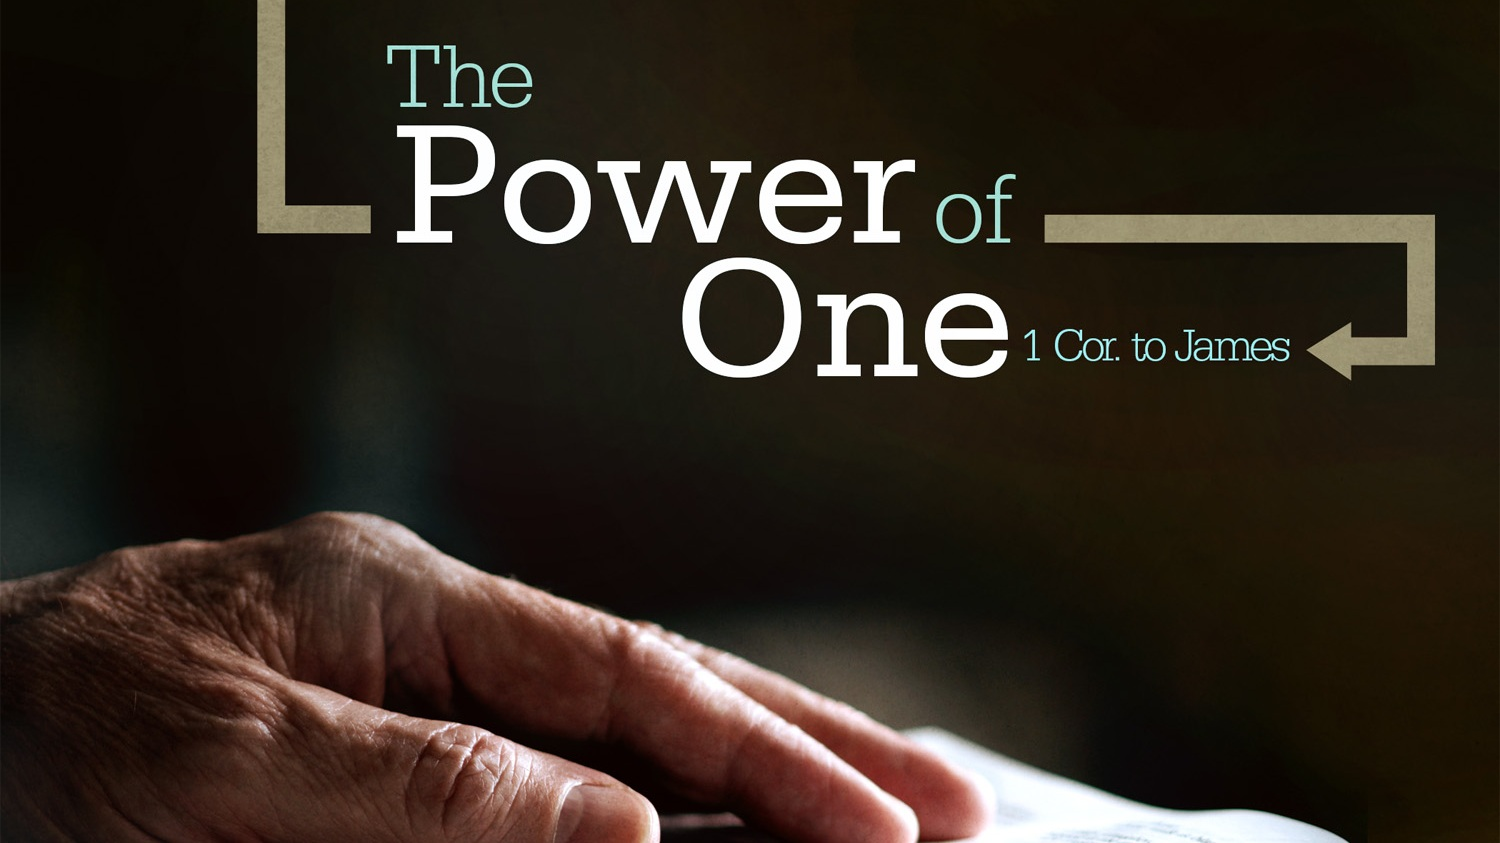 The Power of One 2019